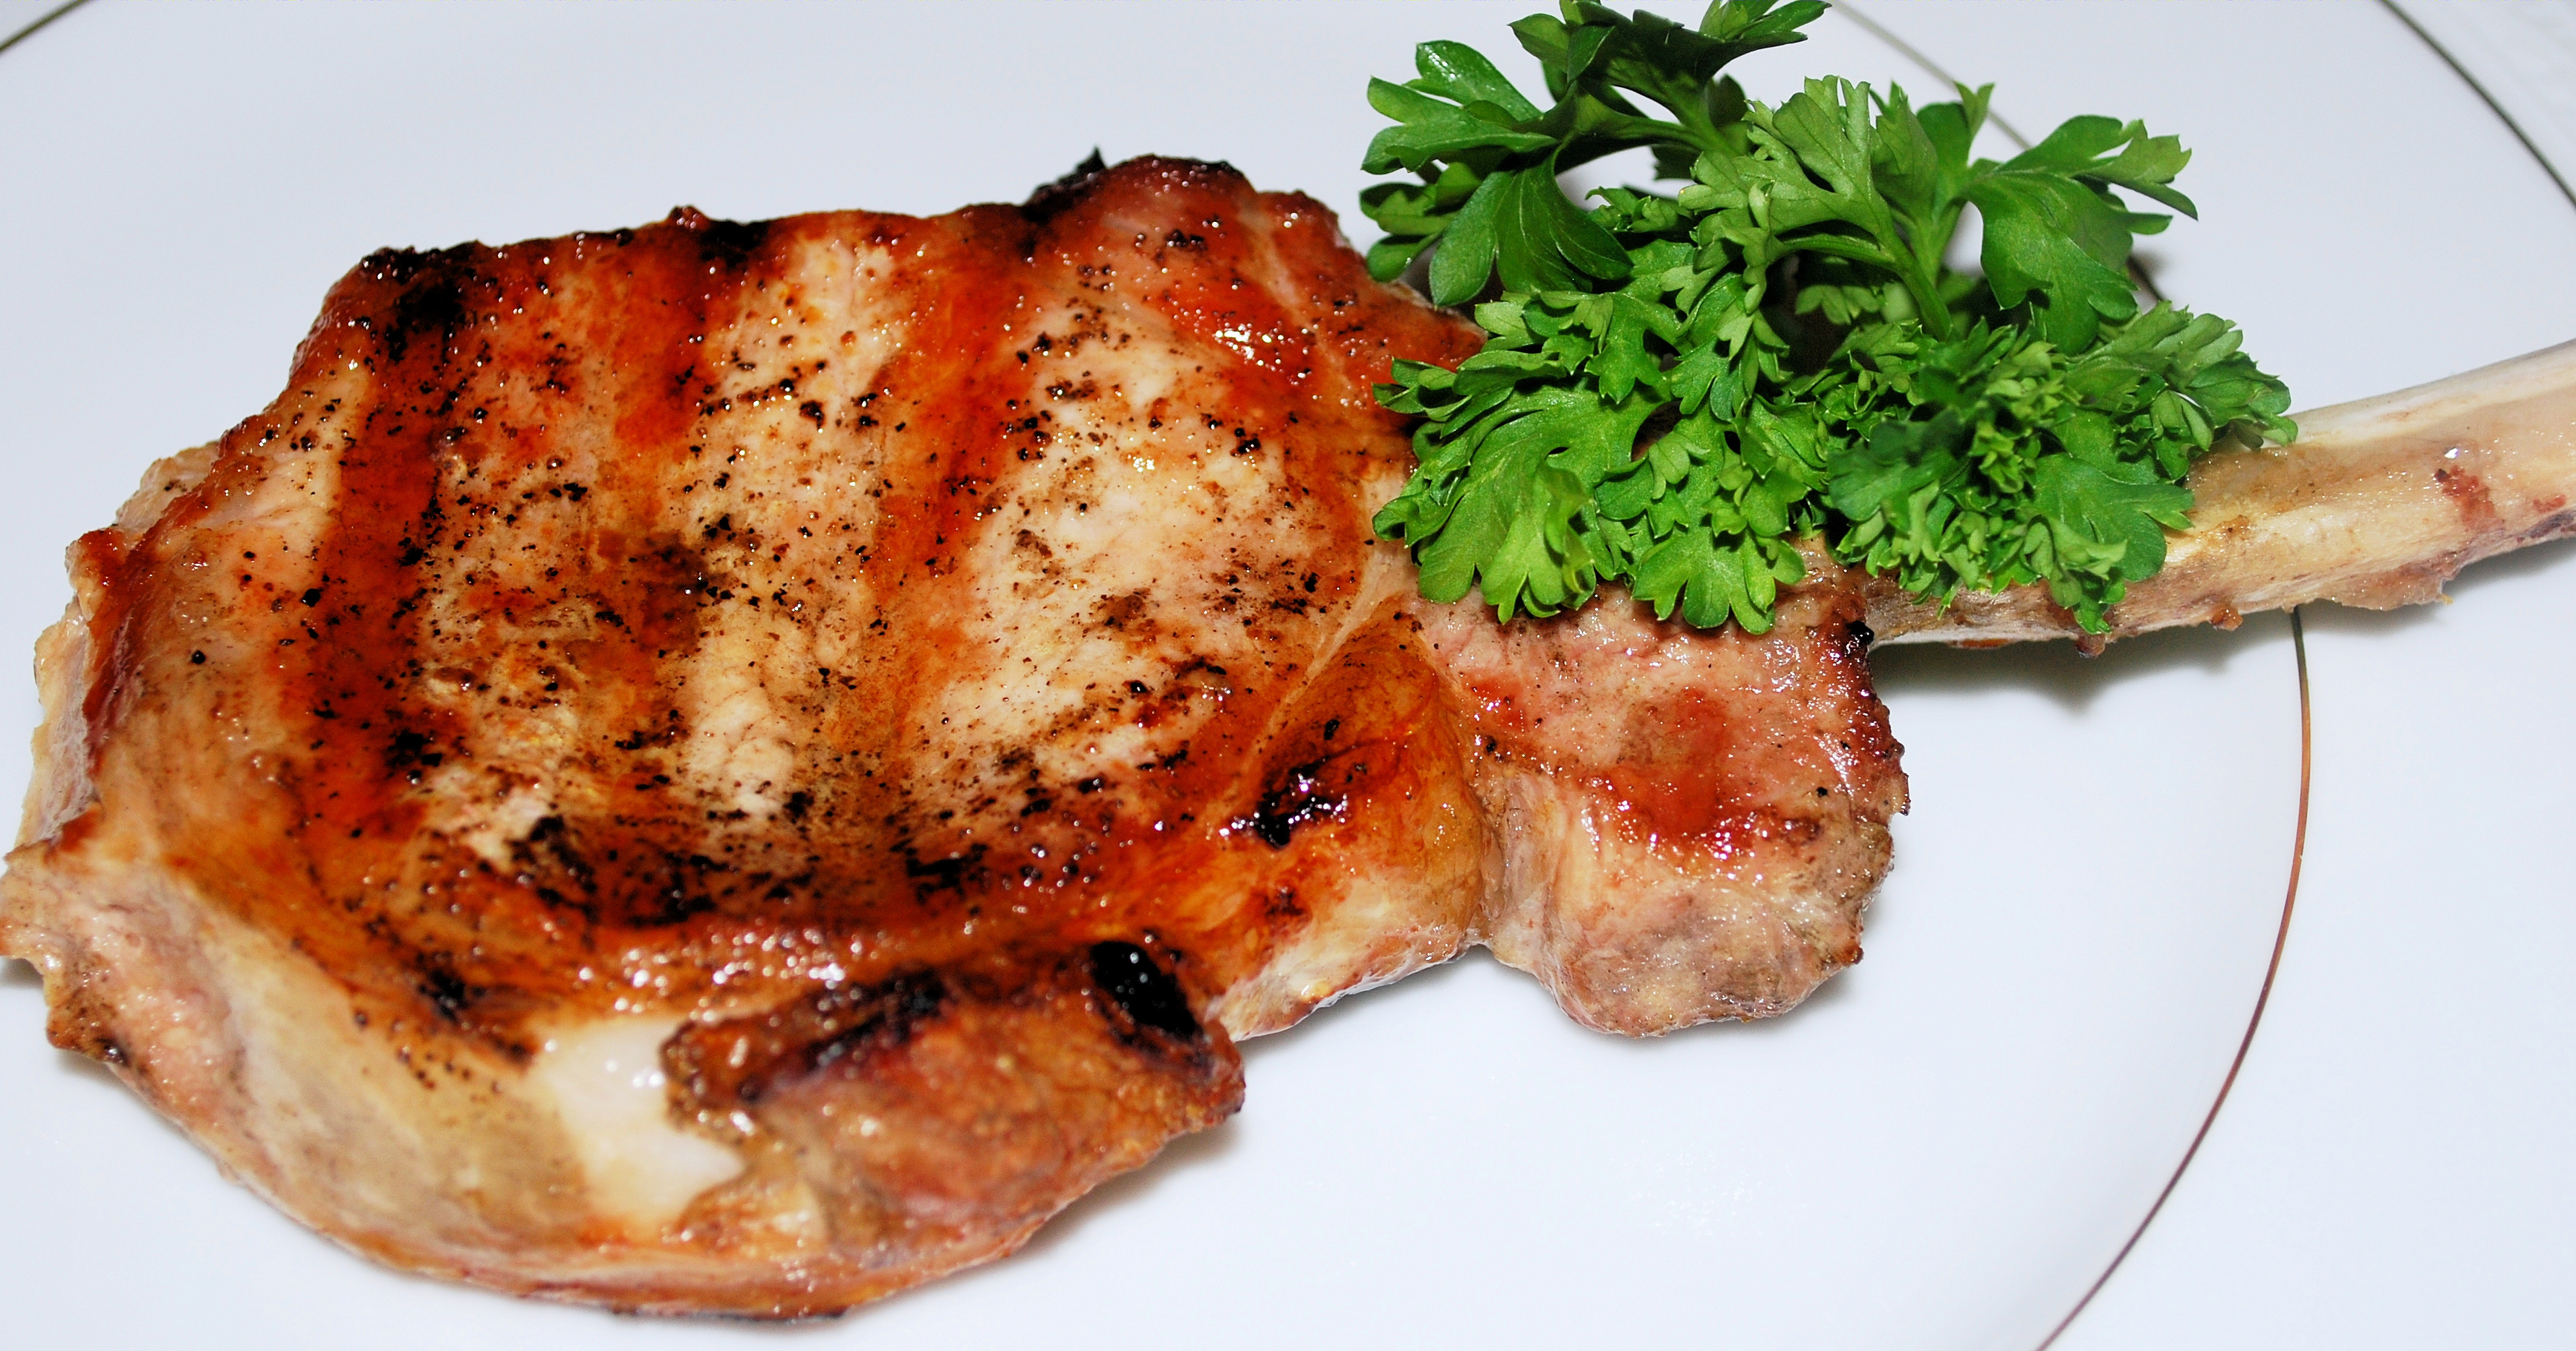 Grilled Pork Loin Chop